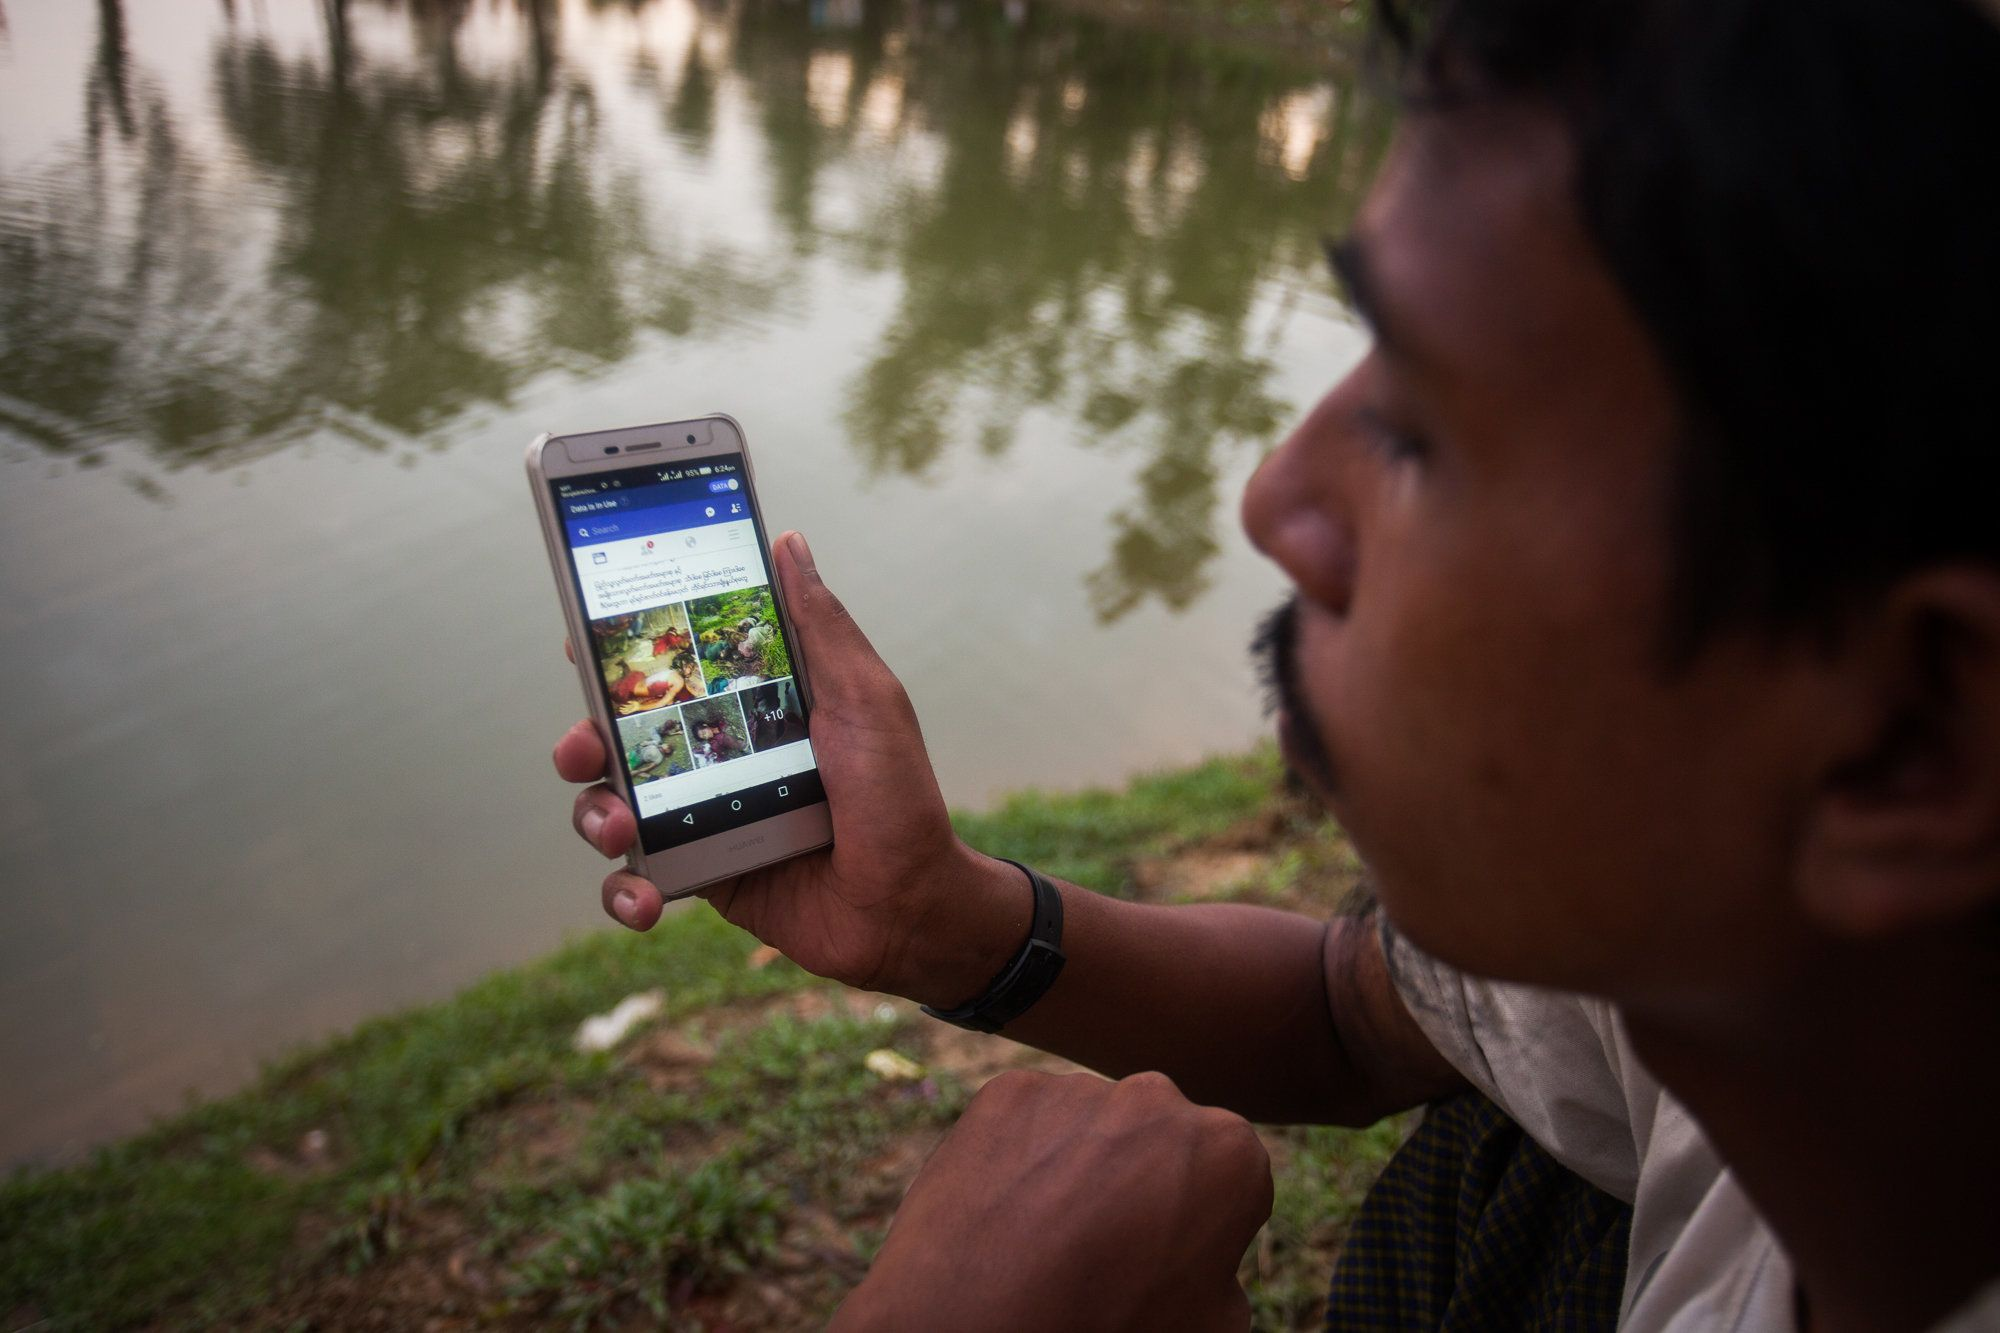 A Rohingya ethnic minority man looking facebook at his cell phone at a temporary makeshift camp after crossing over from Myanmar into the Bangladesh side of the border, near Cox's Bazar's Palangkhali, Friday, Sept. 8, 2017. Tens of thousands more people have crossed by boat and on foot into Bangladesh in the last two weeks as they flee violence in western Myanmar. (Photo by Ahmed Salahuddin/NurPhoto via Getty Images)